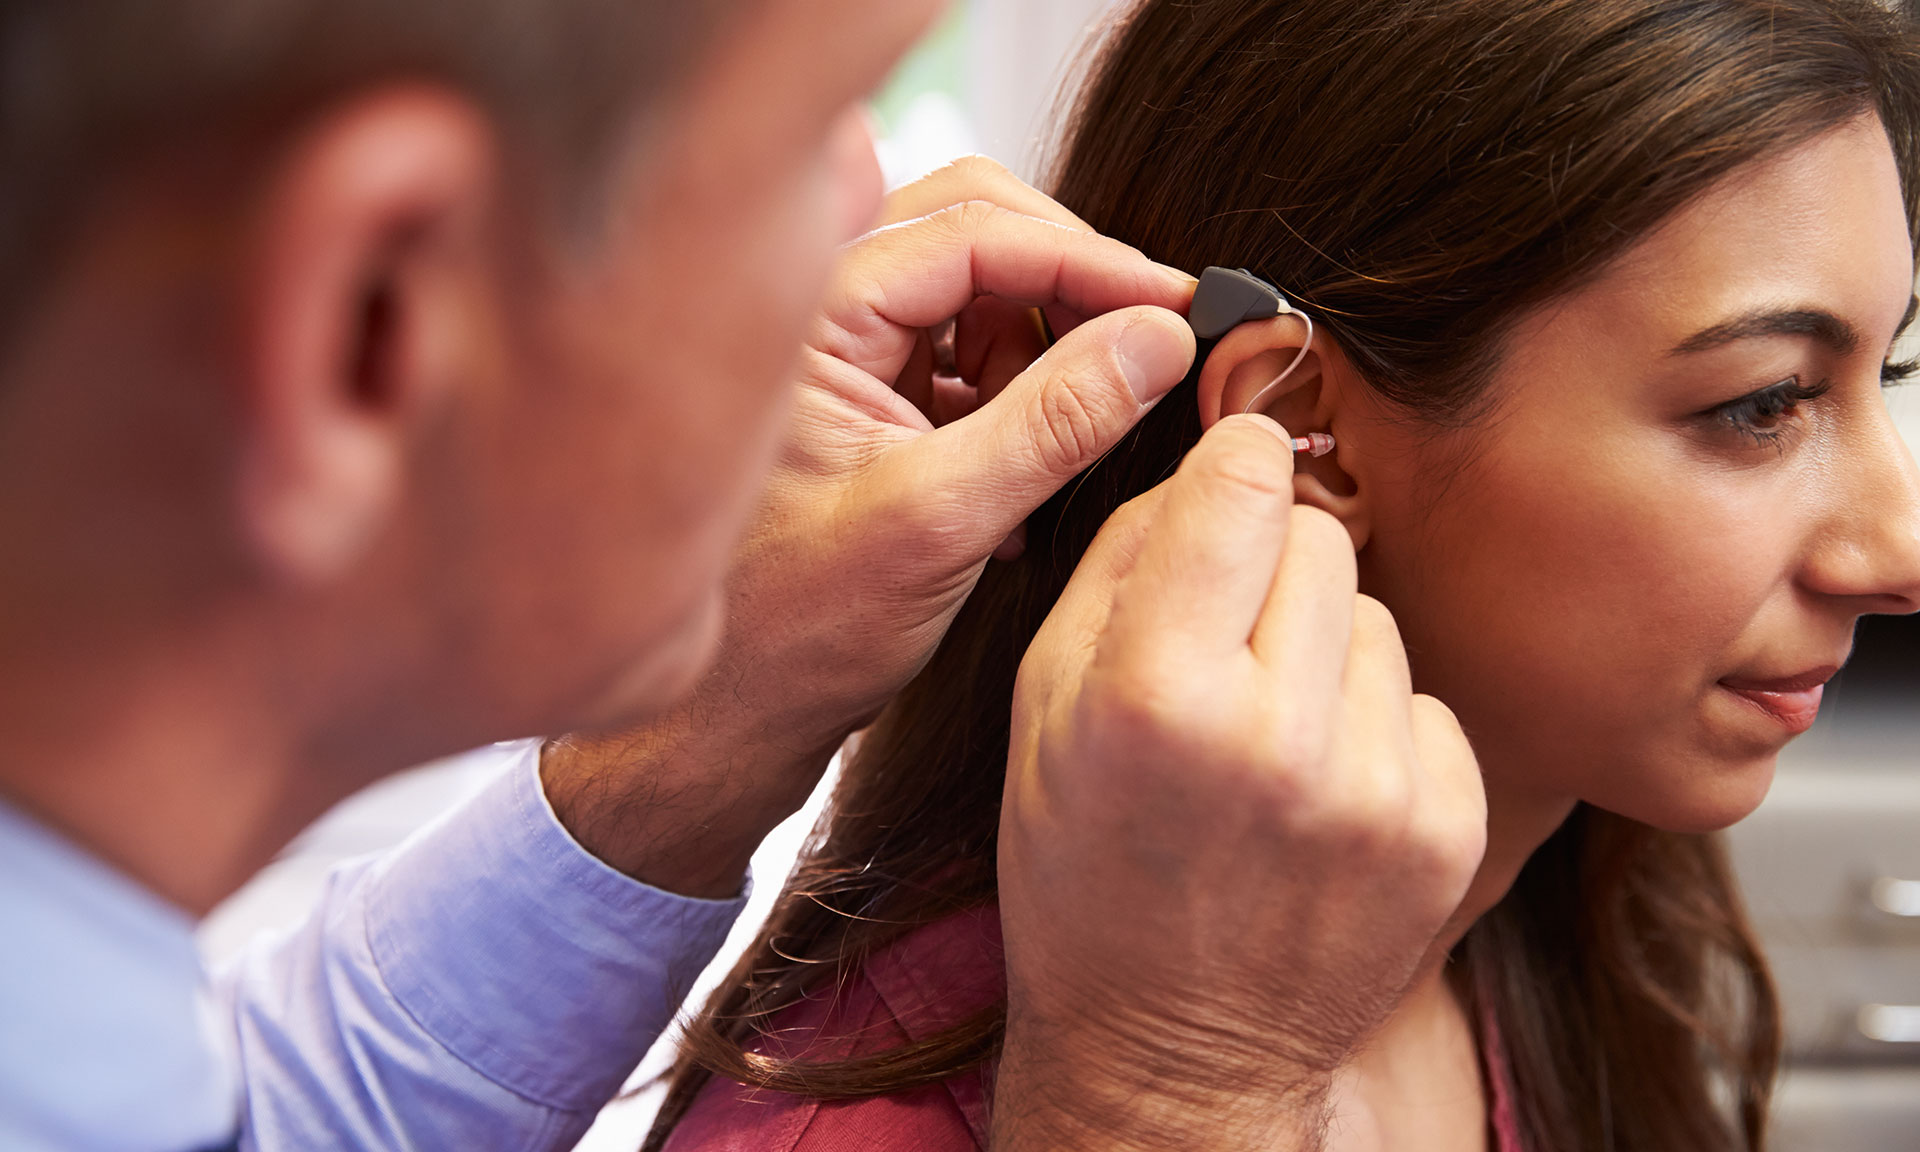 Man fitting a woman's hearing aid